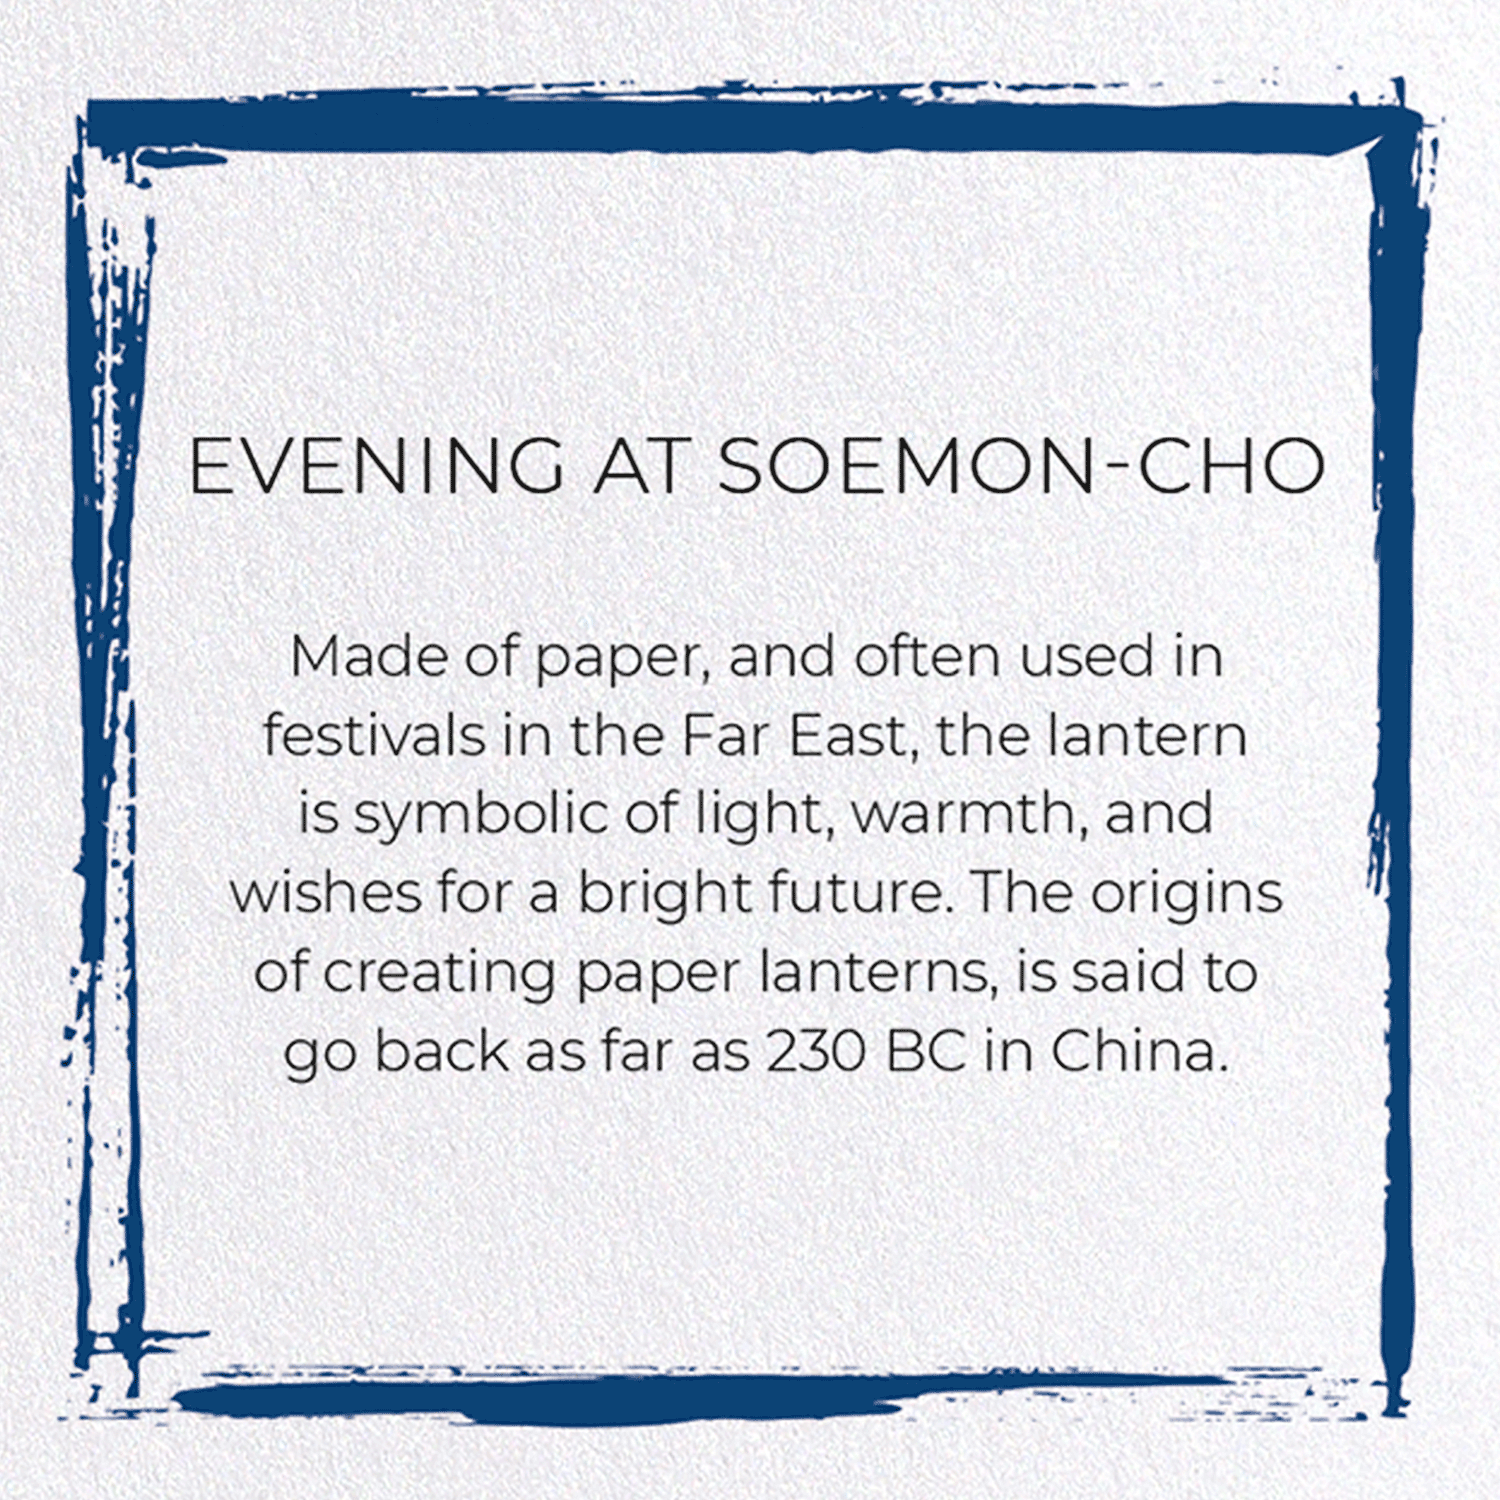 EVENING AT SOEMON-CHO: 8xCards